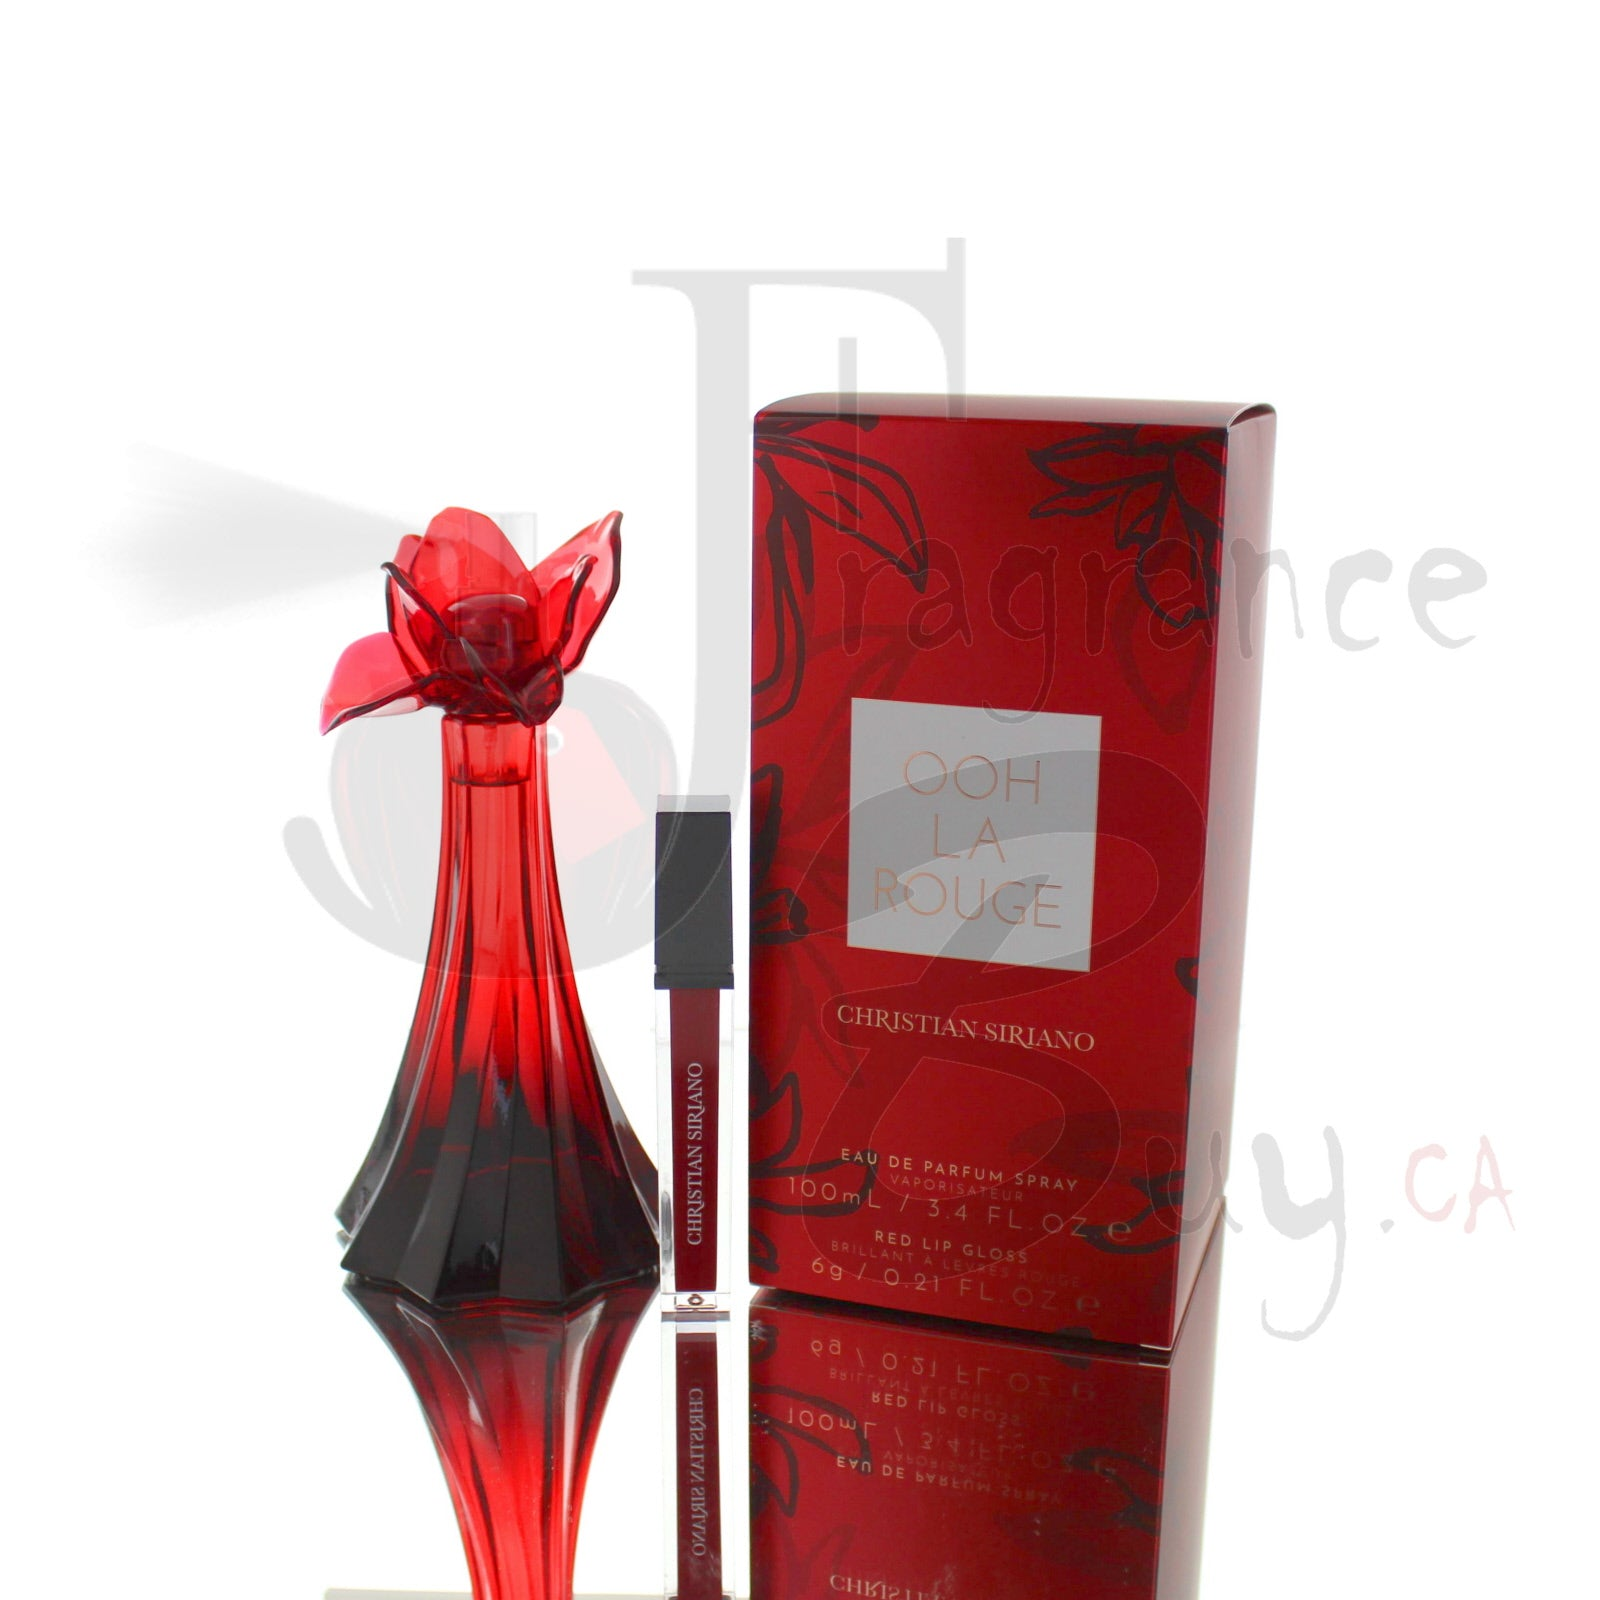 Christian Siriano Ooh La Rouge (2020) For Woman